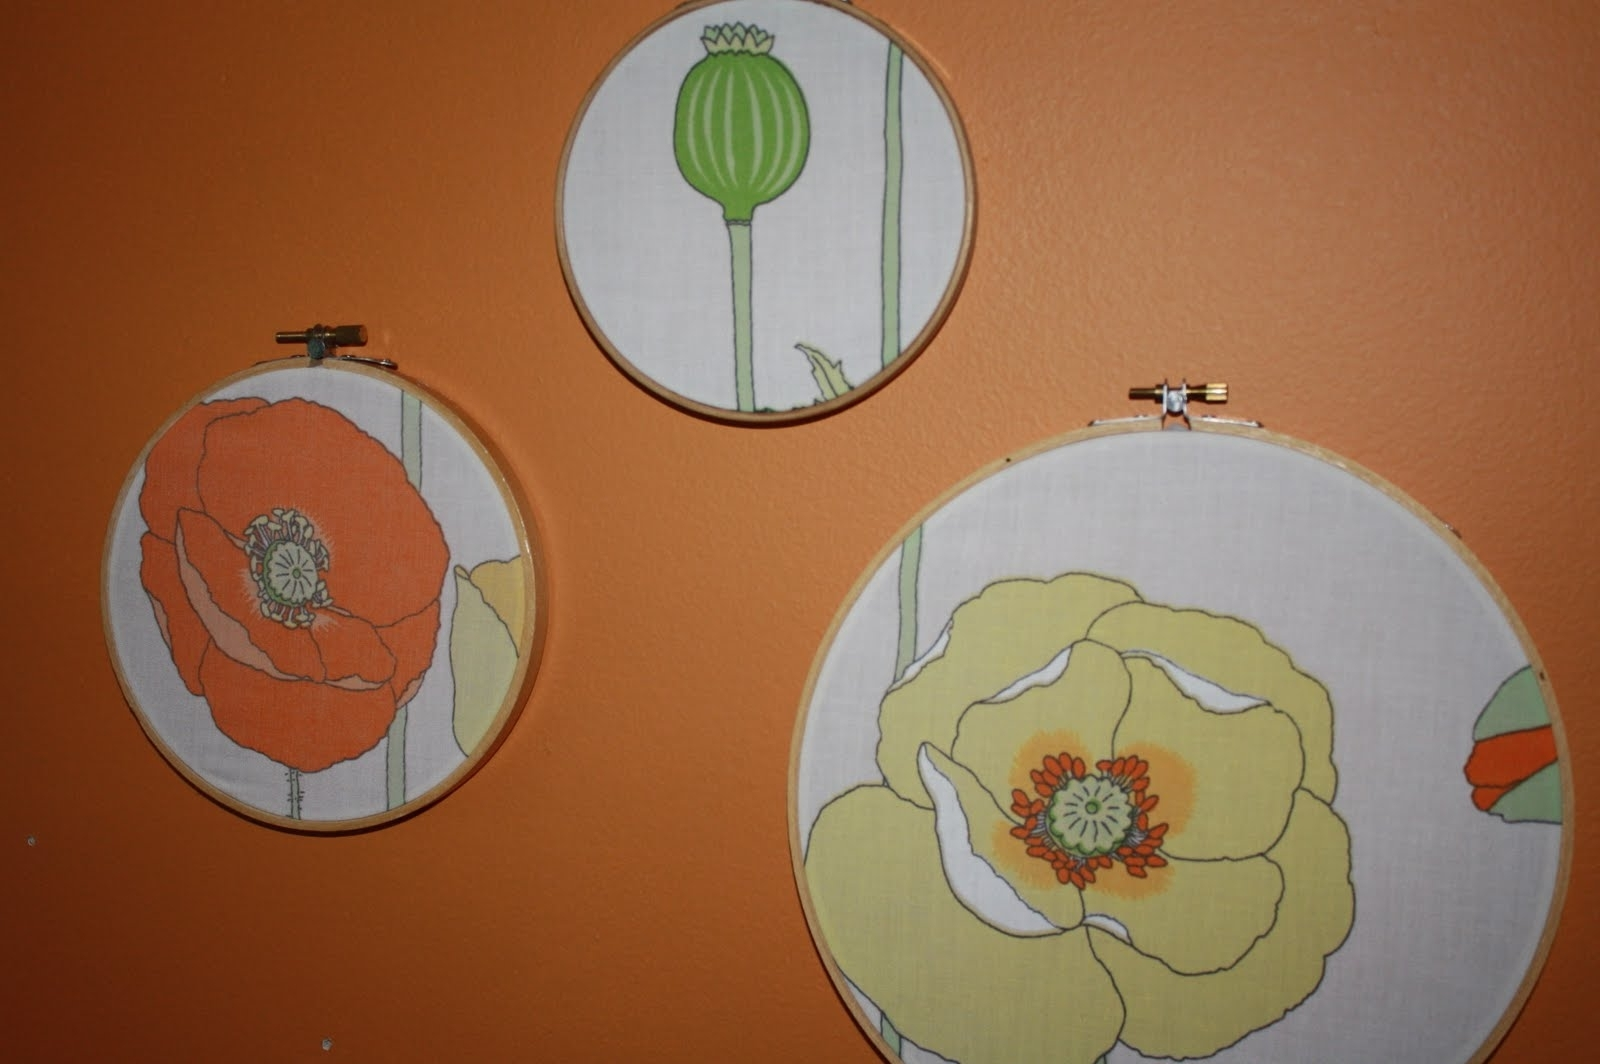 Whimsie Dots: A Simple No Sew Fabric Wall Art – Super Tech Regarding Well Known No Sew Fabric Wall Art (View 11 of 15)